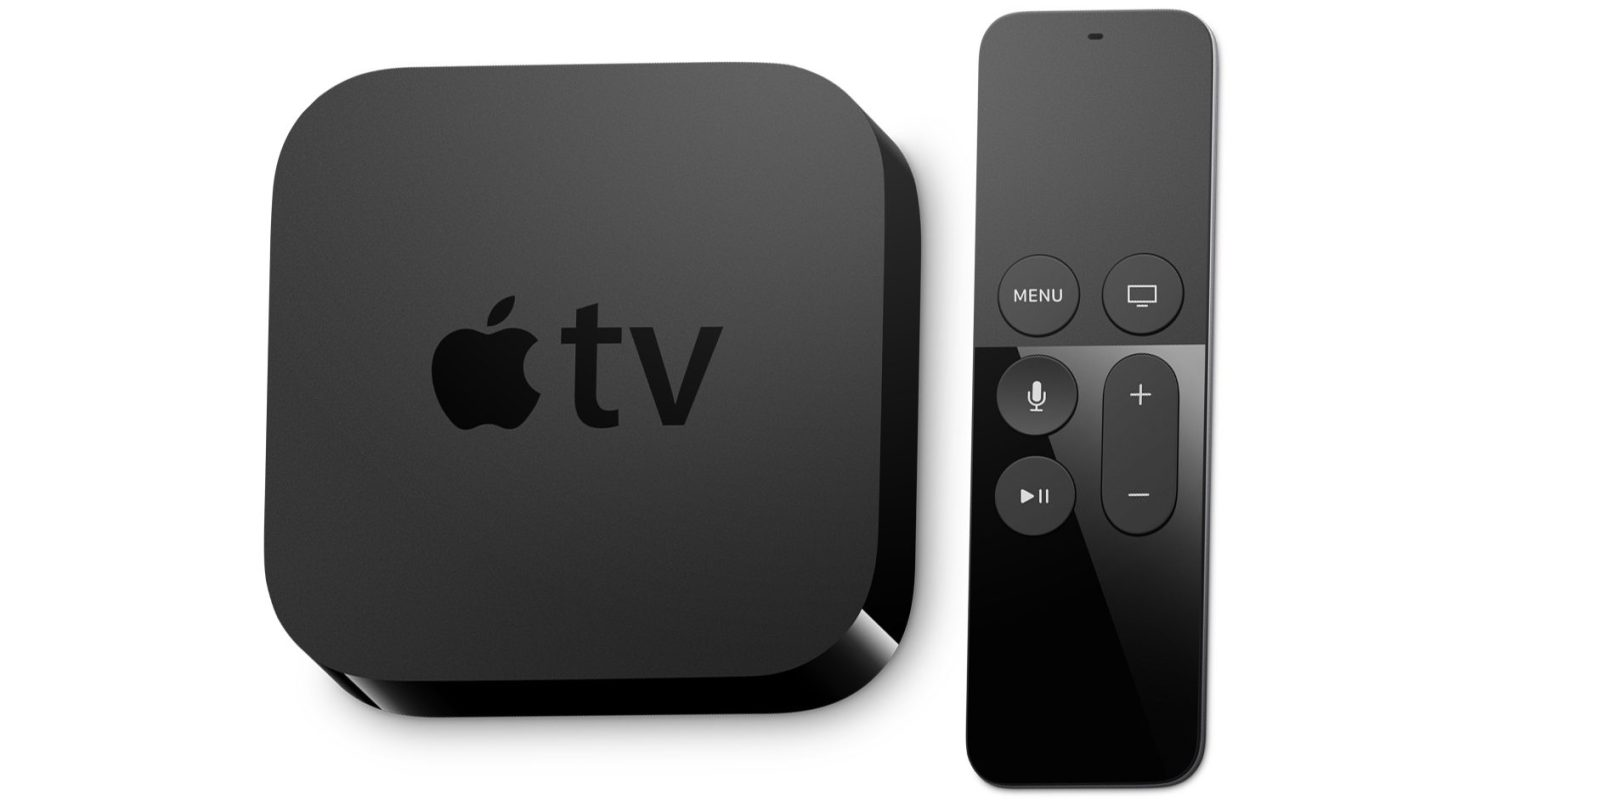 tvOS 10.2.1 update for Apple TV now available